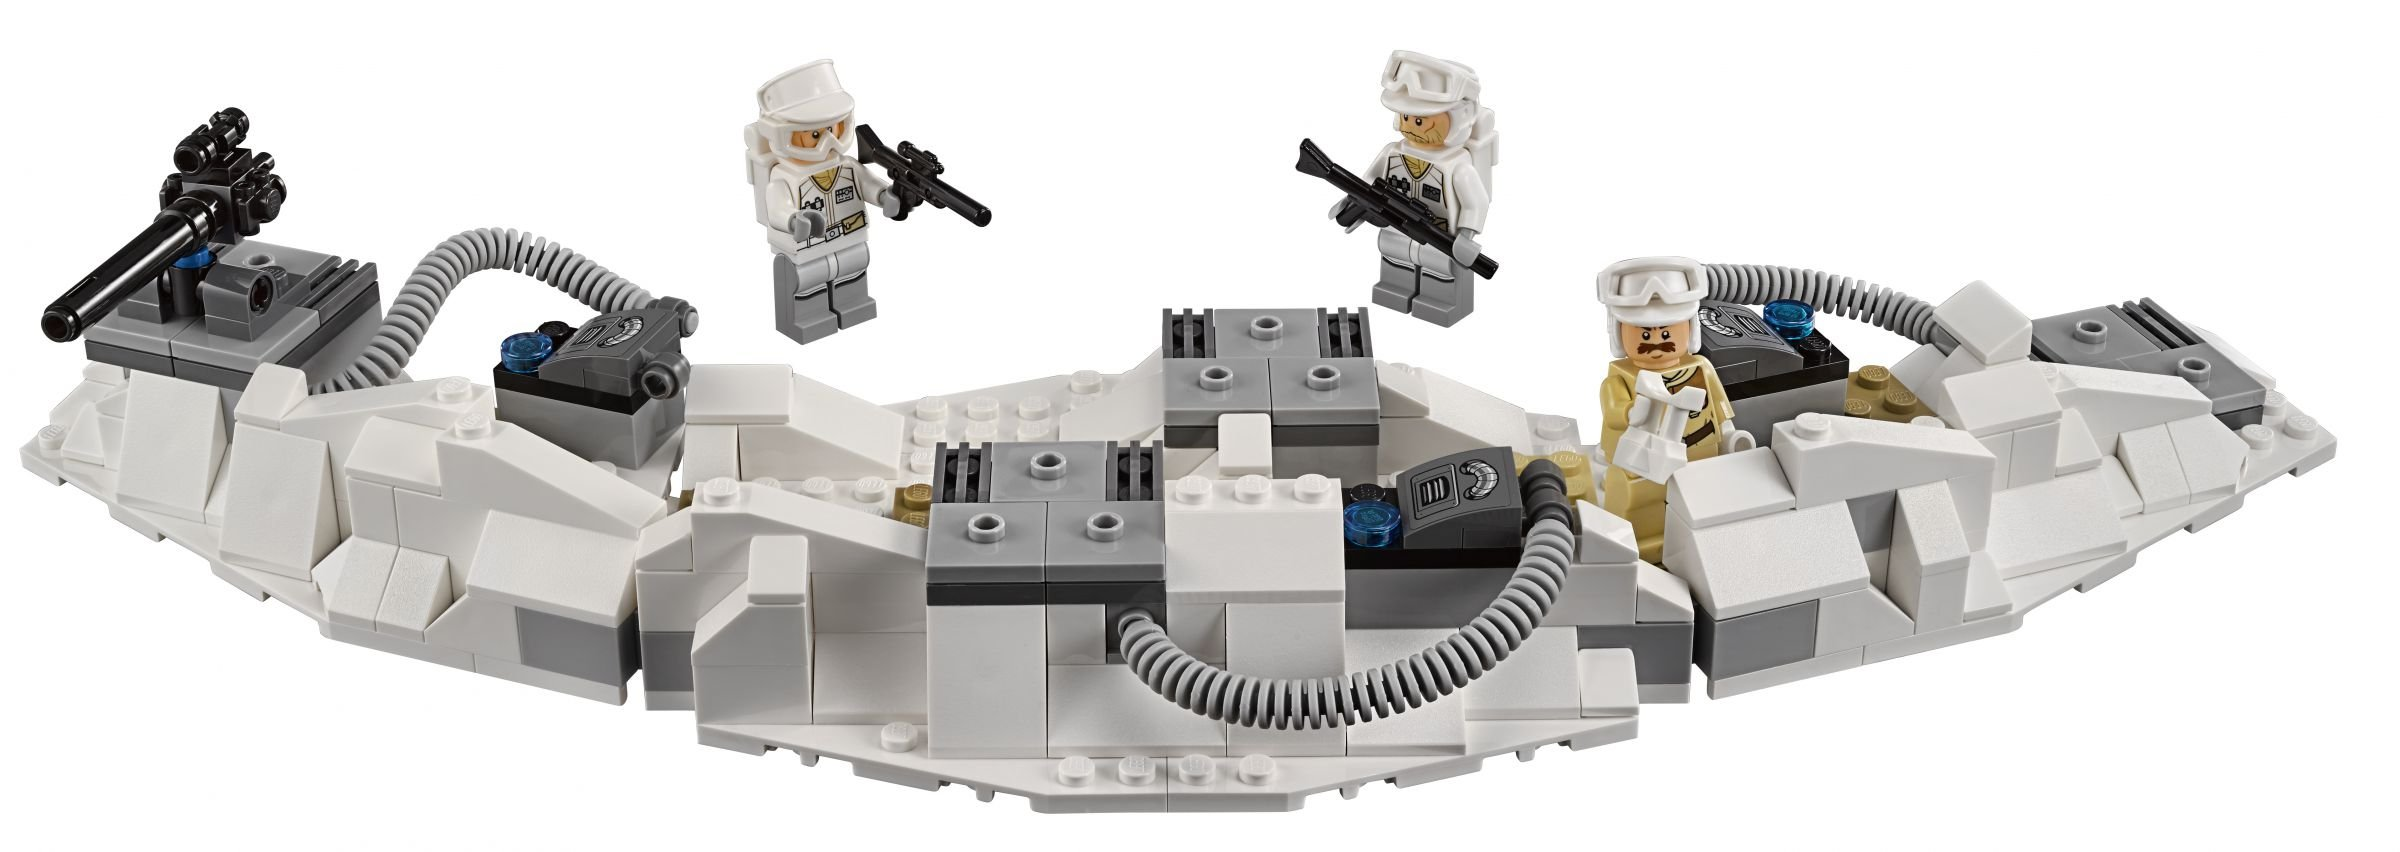 LEGO Star Wars 75098 Angriff auf Hoth™ LEGO-75098-Assault-on-Hoth-Func_006_01.jpg